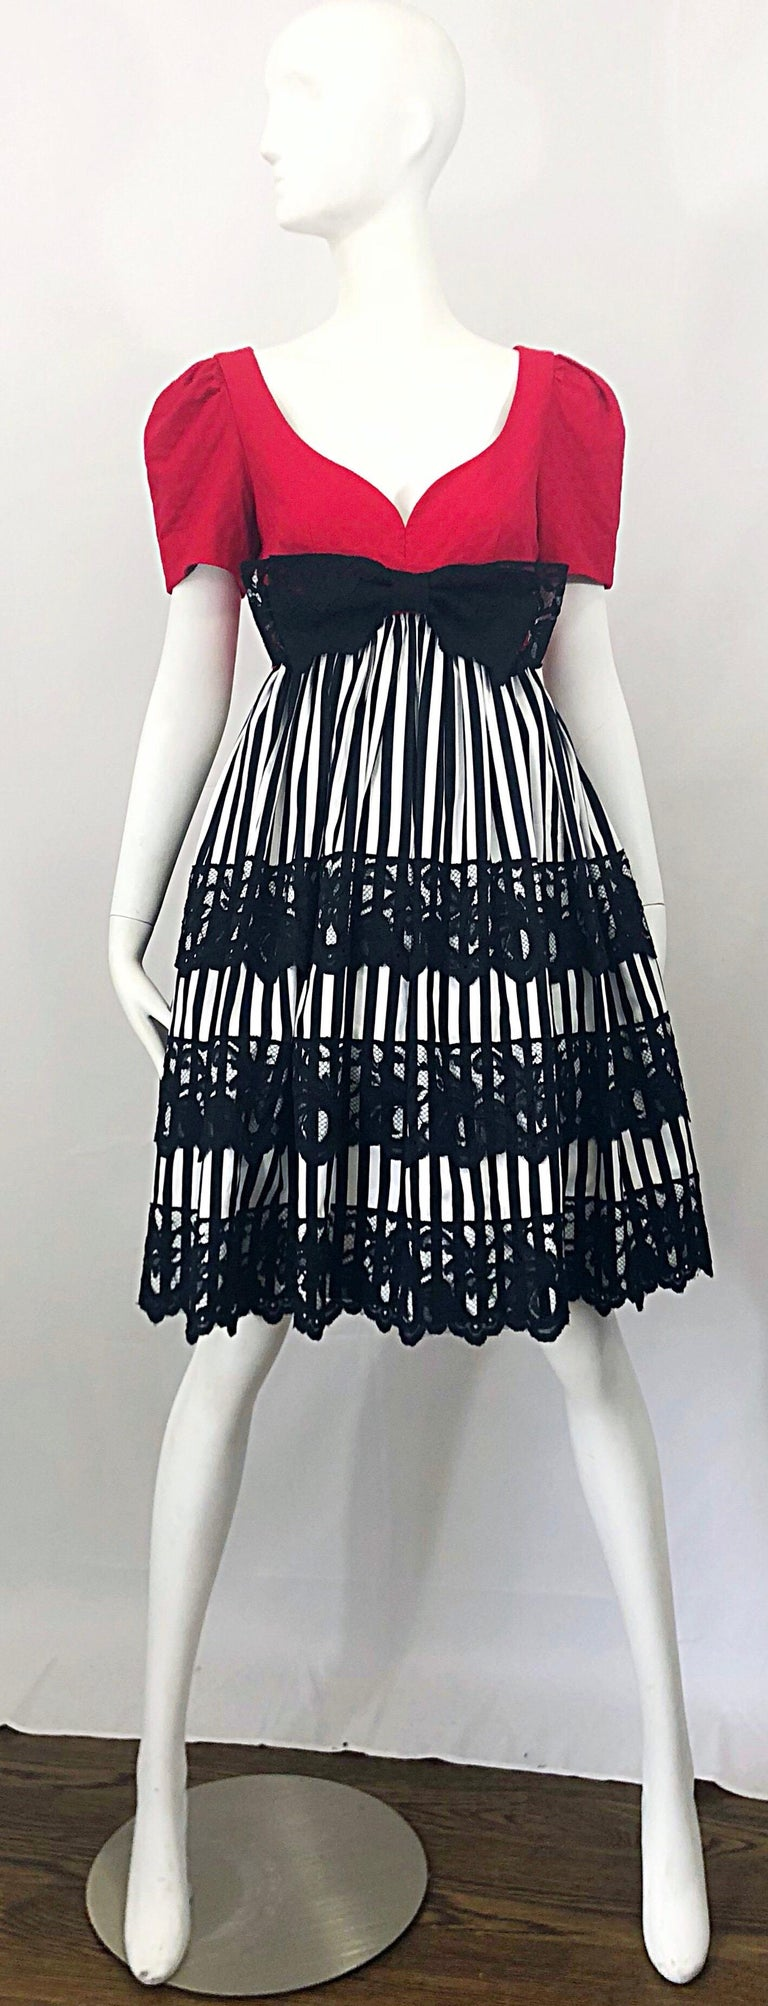 Insanely chic vintage ADELE SIMPSON red, black and white  fit n' flare cocktail dress! Features a fitted red cotton pique bodice with a sweetheart neckline. Empire waist with a black and white striped silk skirt. Three black lace panels on the